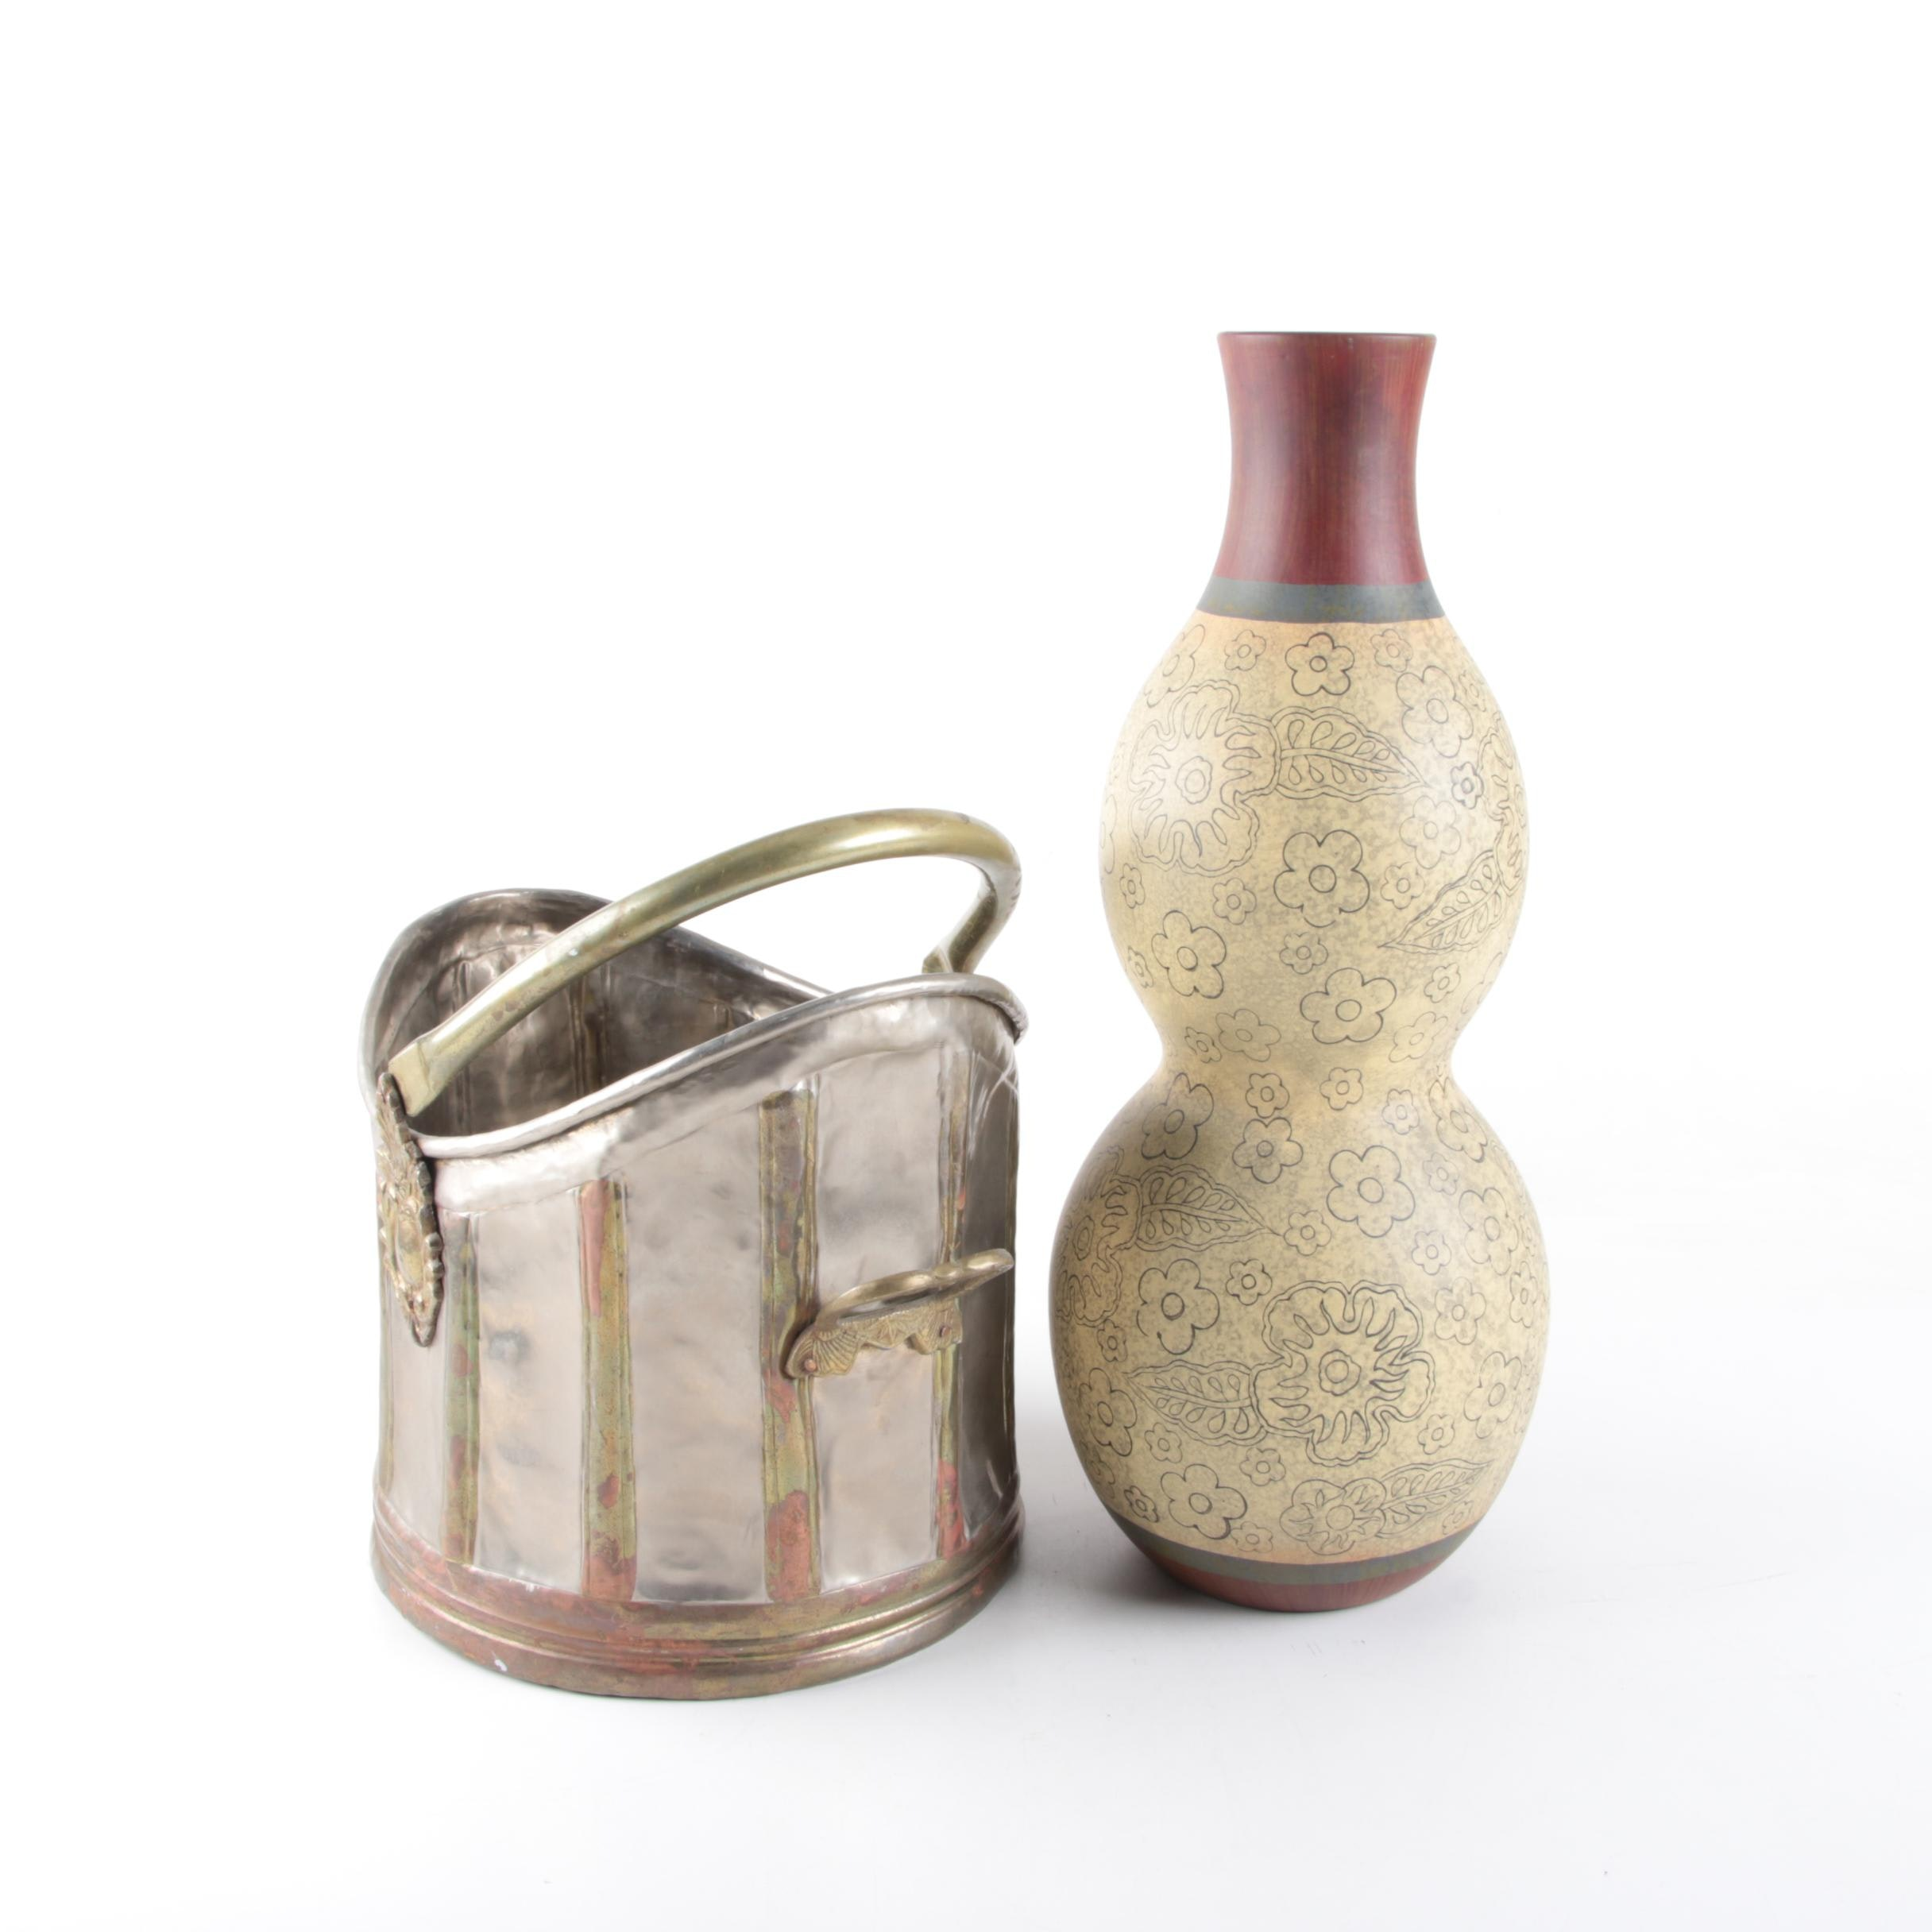 Decorative Coal Scuttle and Double Gourd Vase